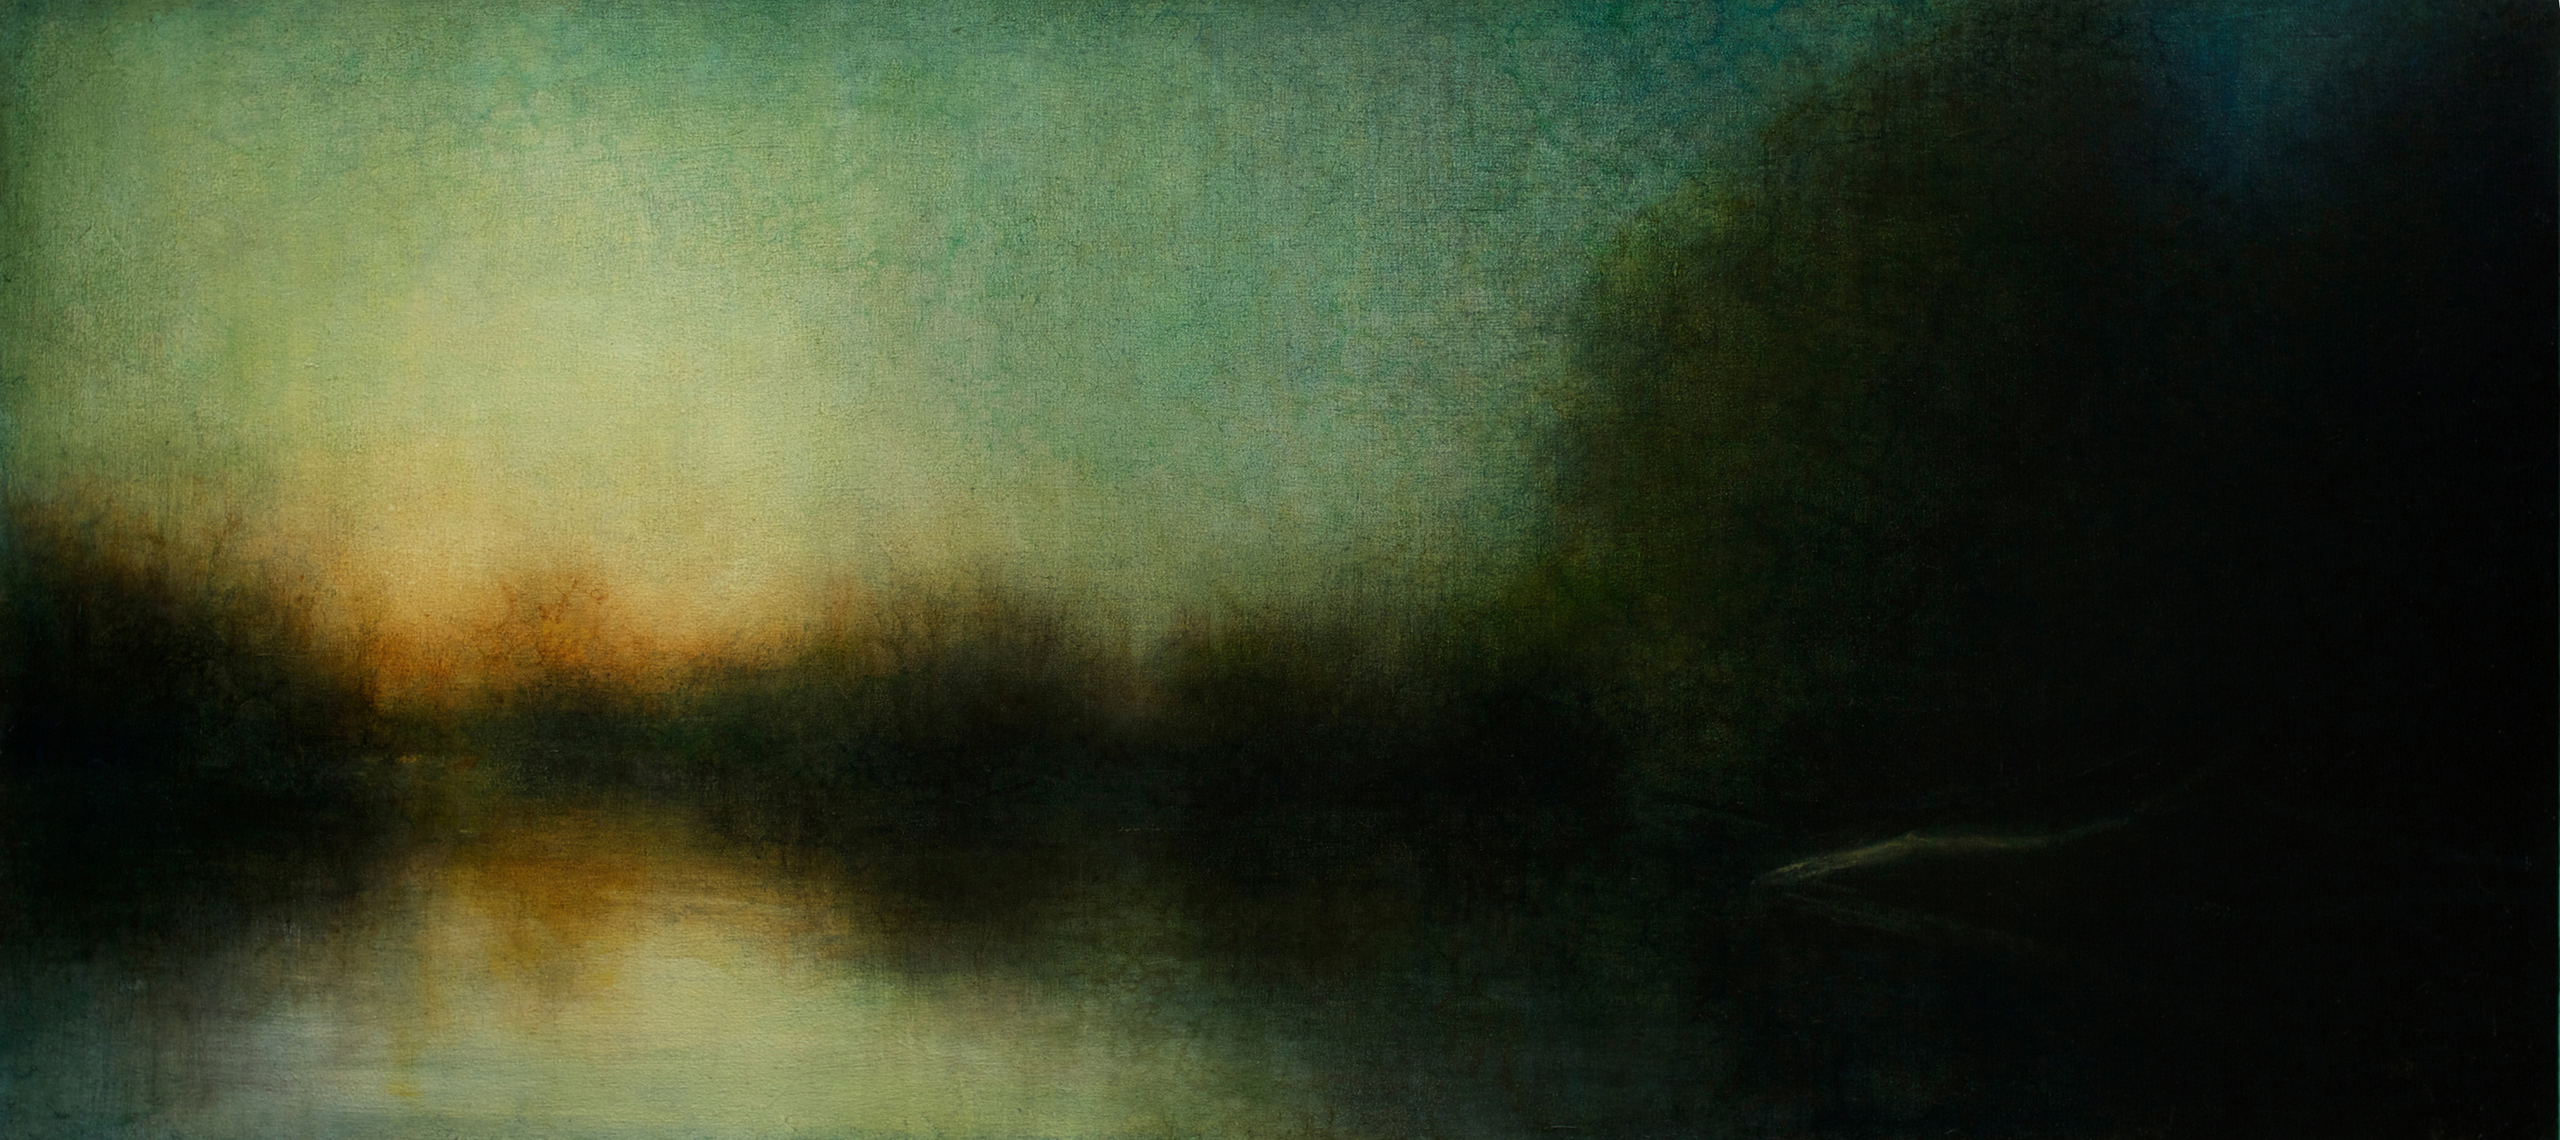 "Maya Kulenovic: WETLANDS / AFTERGLOW, 2014, oil on canvas, 27"" x 55.5"" (69cm x 141cm). 'Land' Series; 'Wetlands' Series."